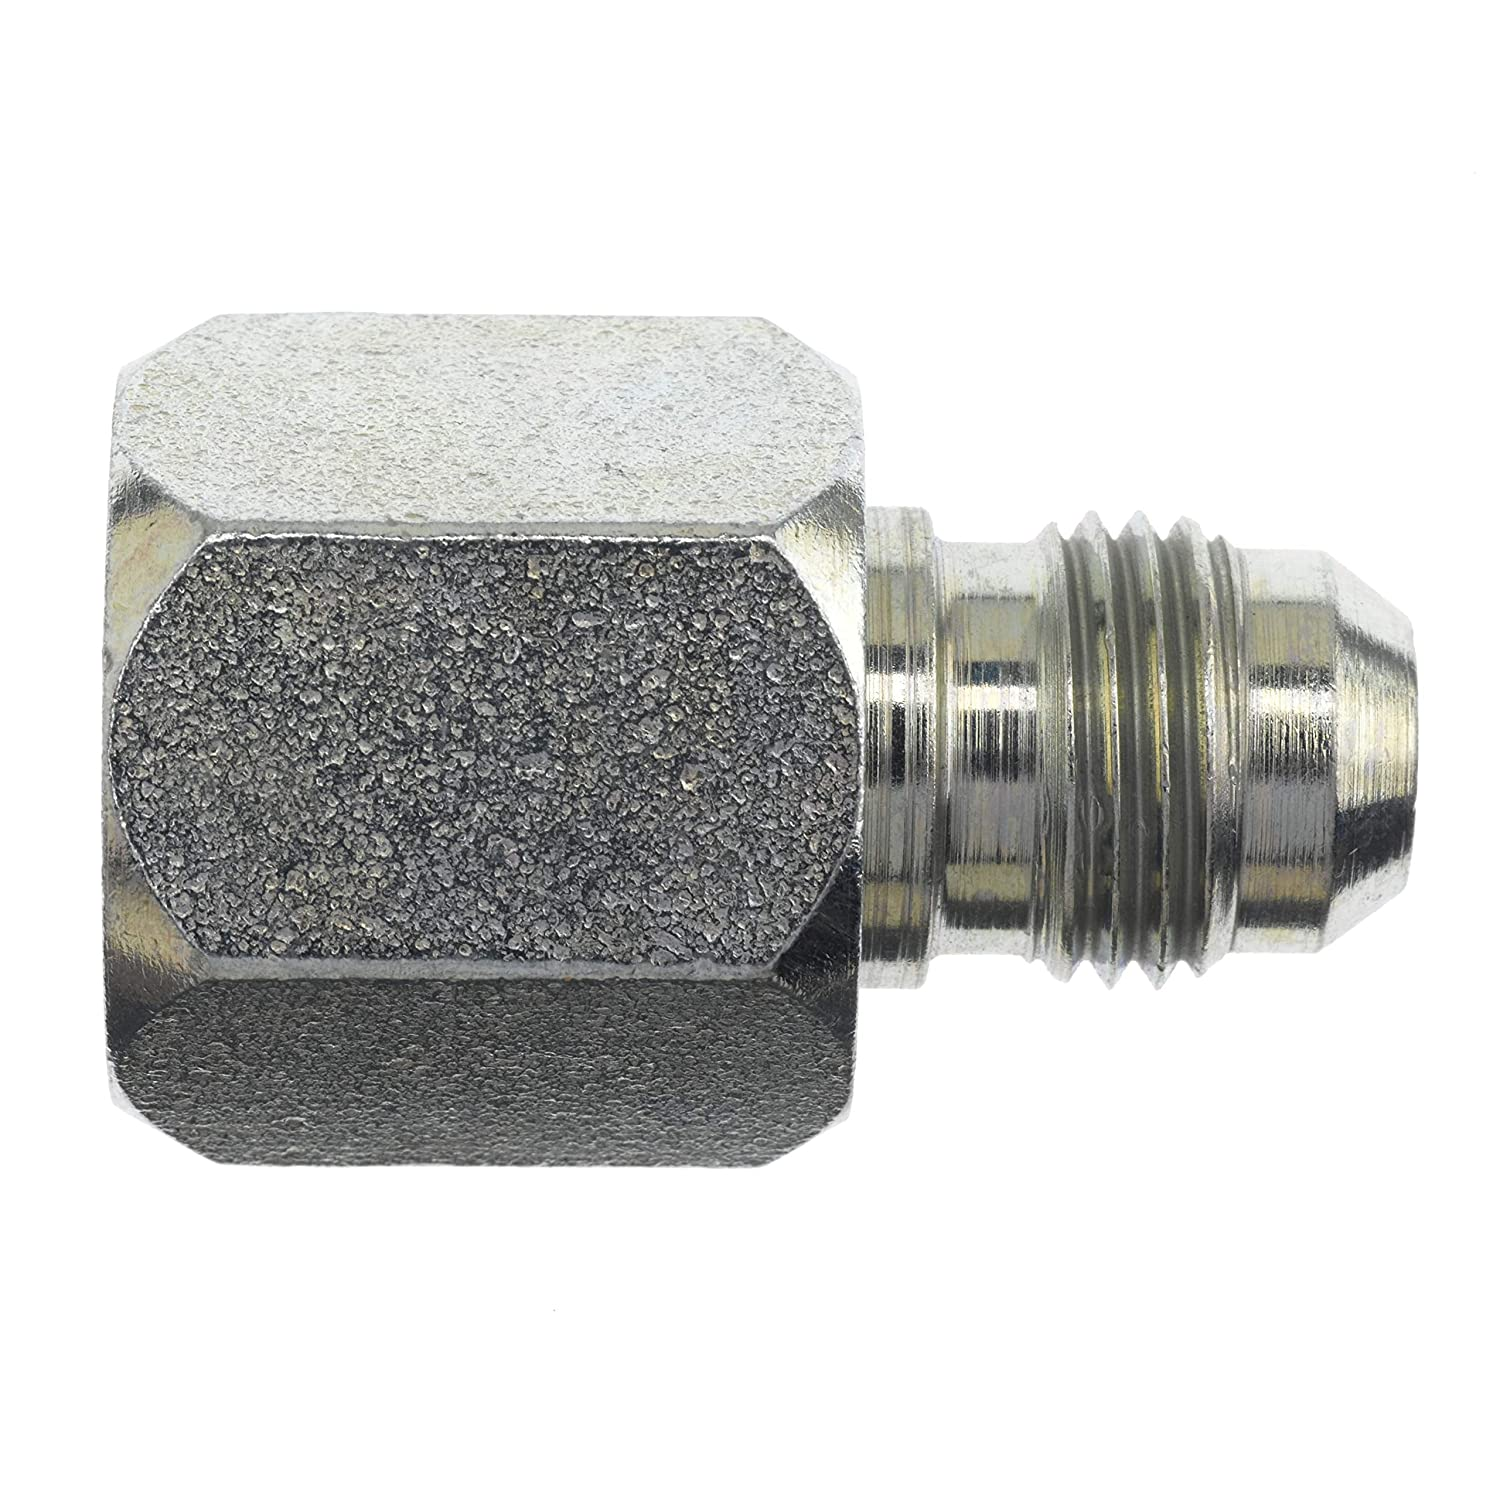 1.22 Length 1-5//16-12 SAE x 9//16-18 SAE Thread Brennan Industries 2406-16-06-2PC Steel Nut and Insert Straight Reducer 1 Female JIC x 3//8 Male JIC 1.500 Hex